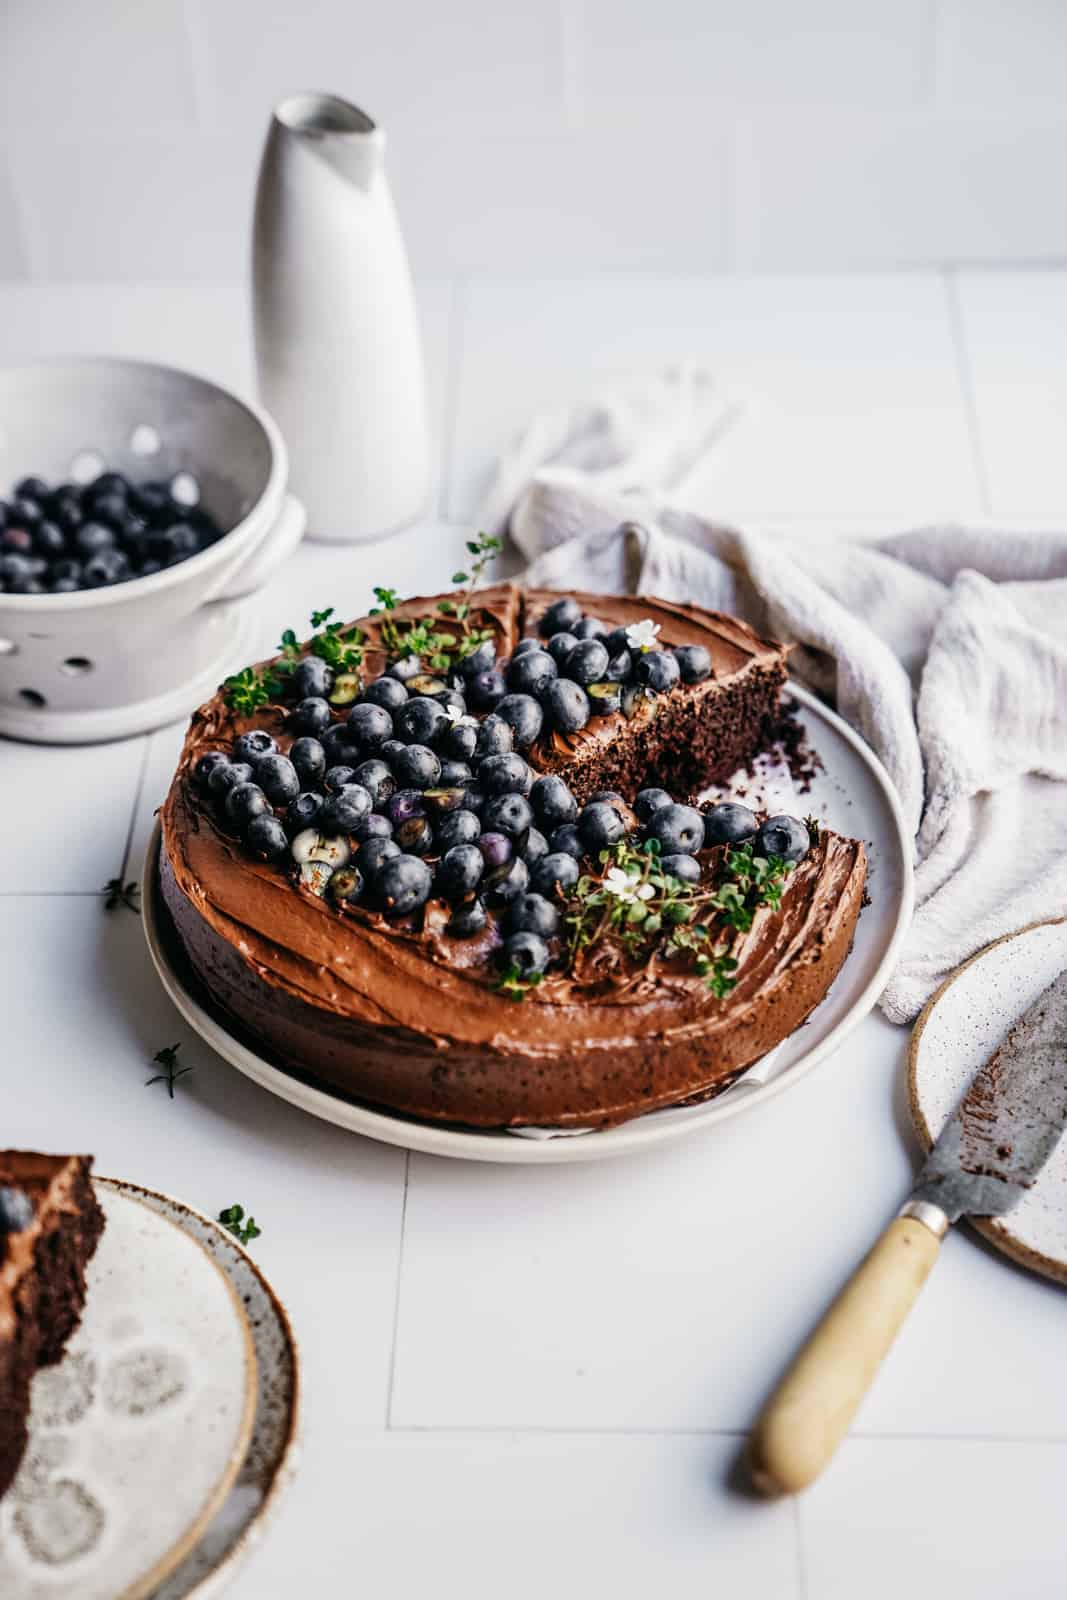 Easy Vegan Chocolate Cake on countertop with fresh blueberries on top.